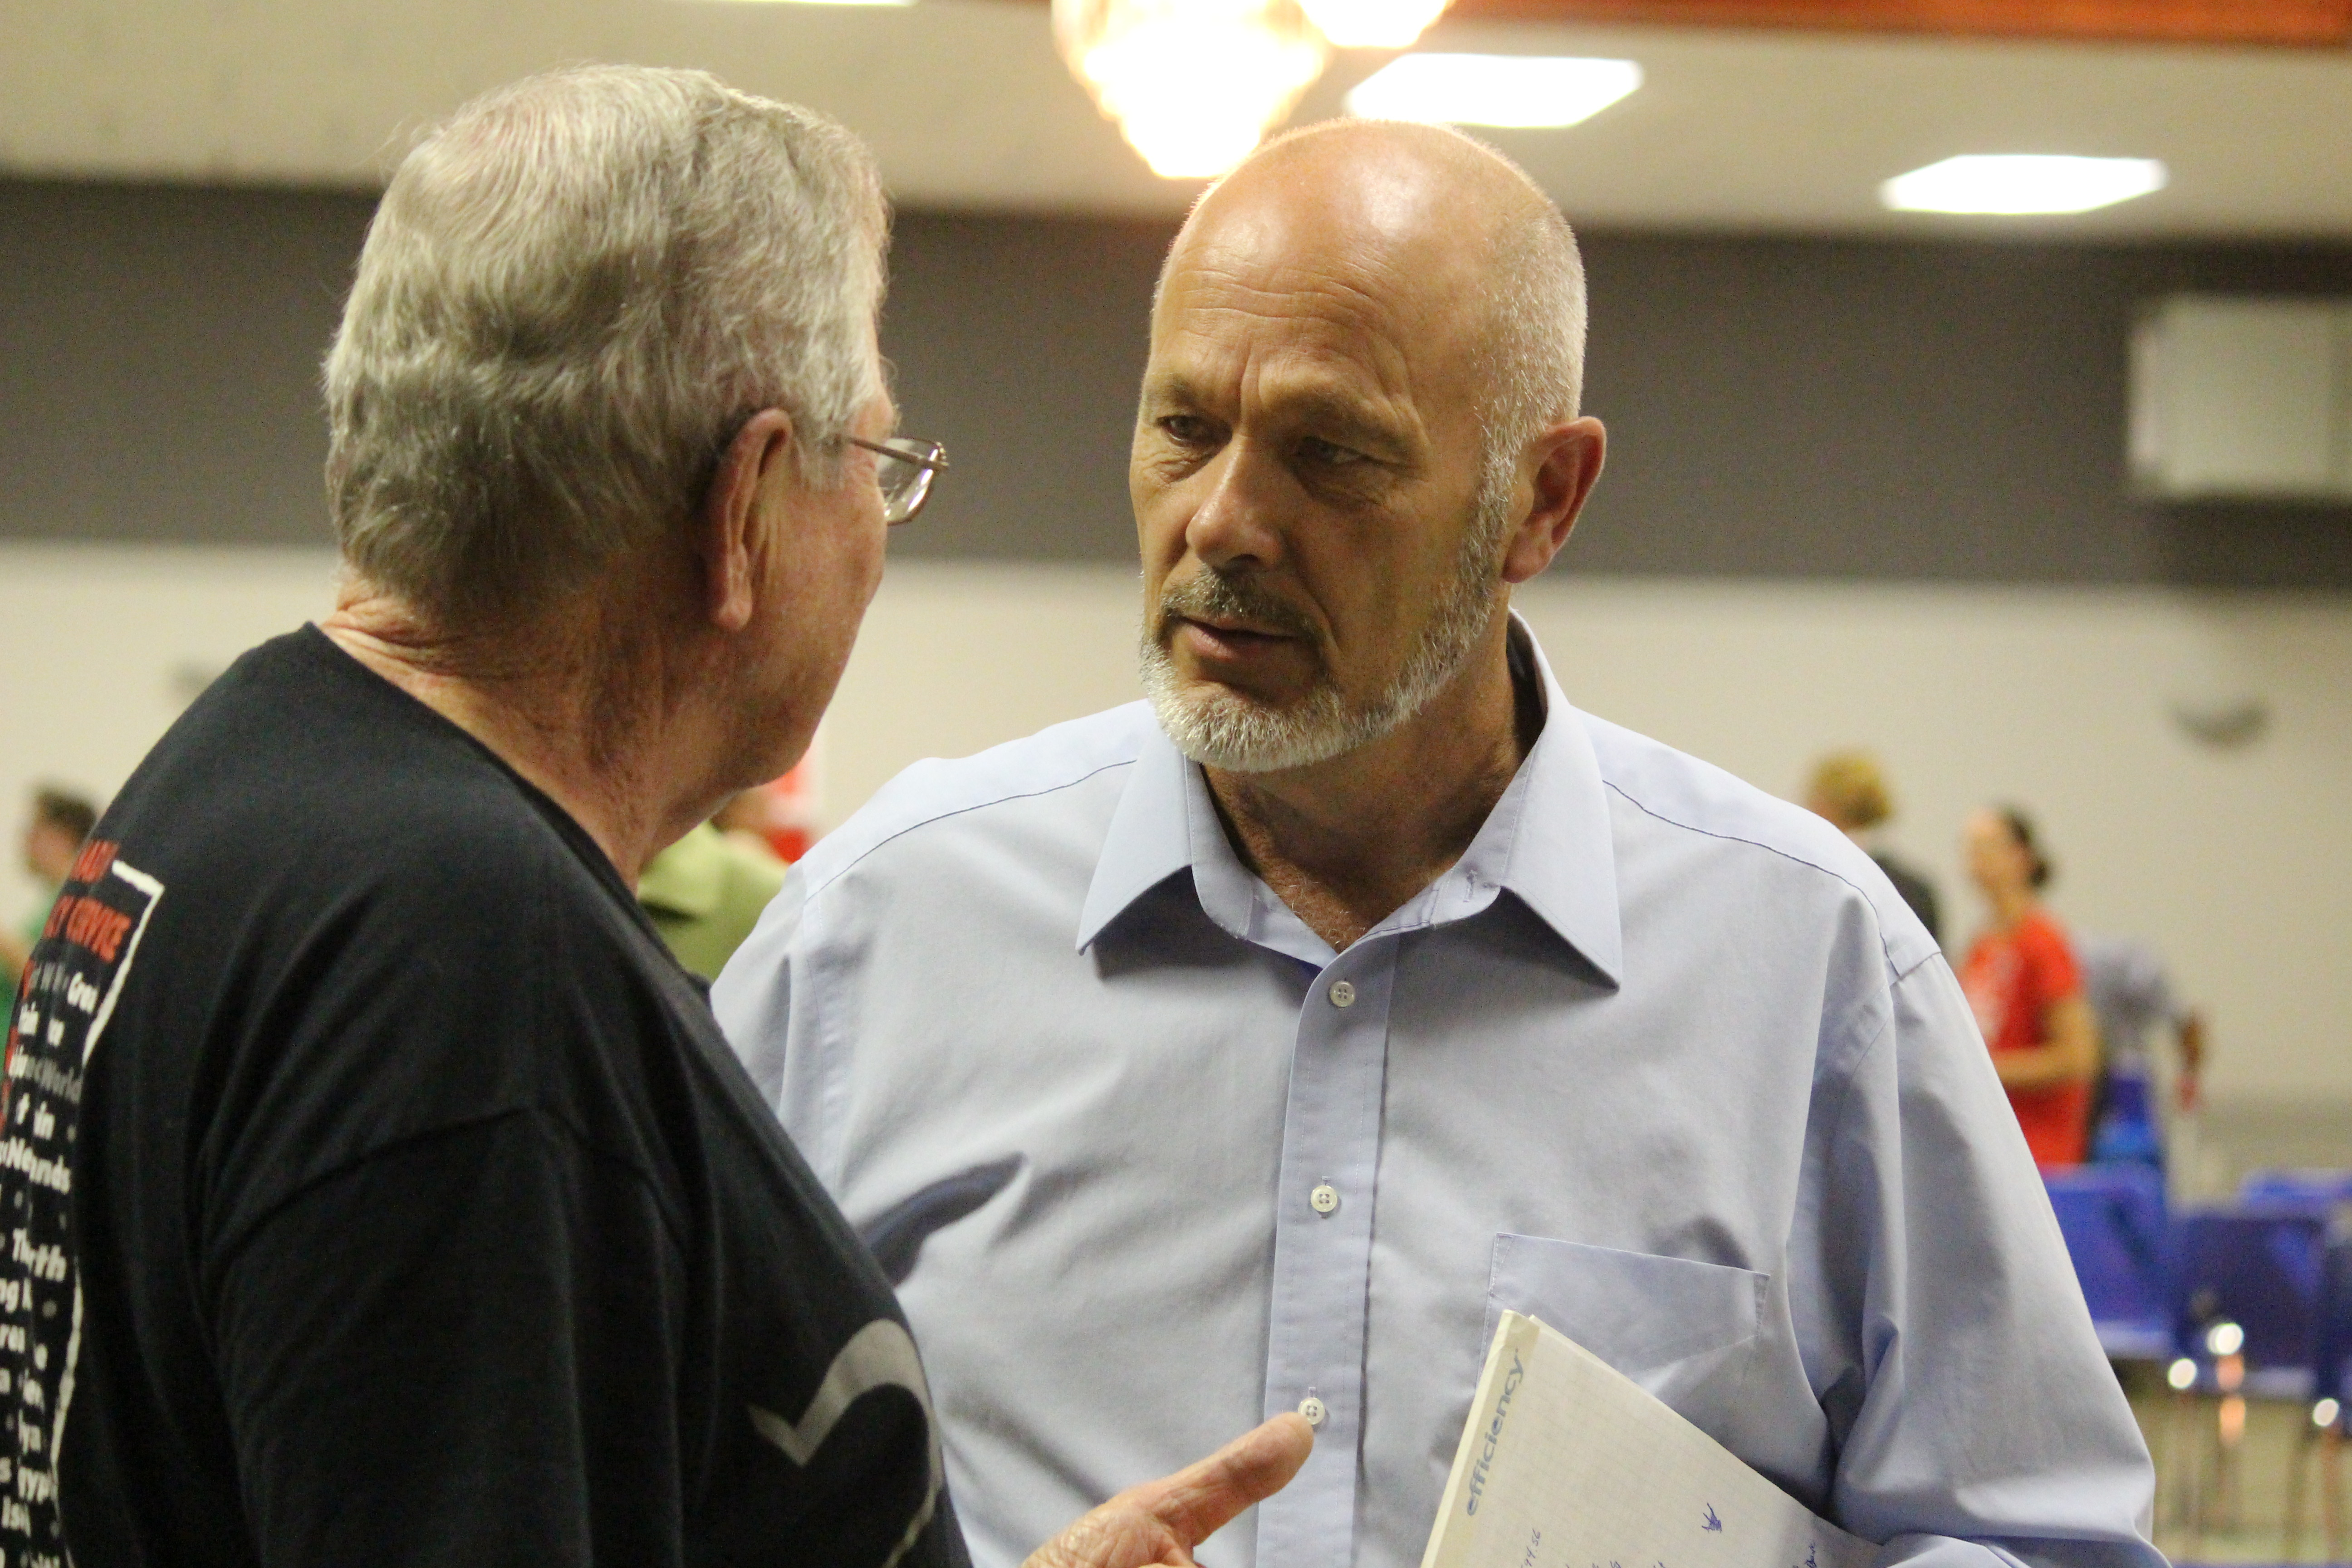 Chatham-Kent-Leamington MP, Dave Van Kesteren, attends an all-candidates debate in Tilbury as the then-Conservative candidate on September 24, 2015. (Photo by Ricardo Veneza)